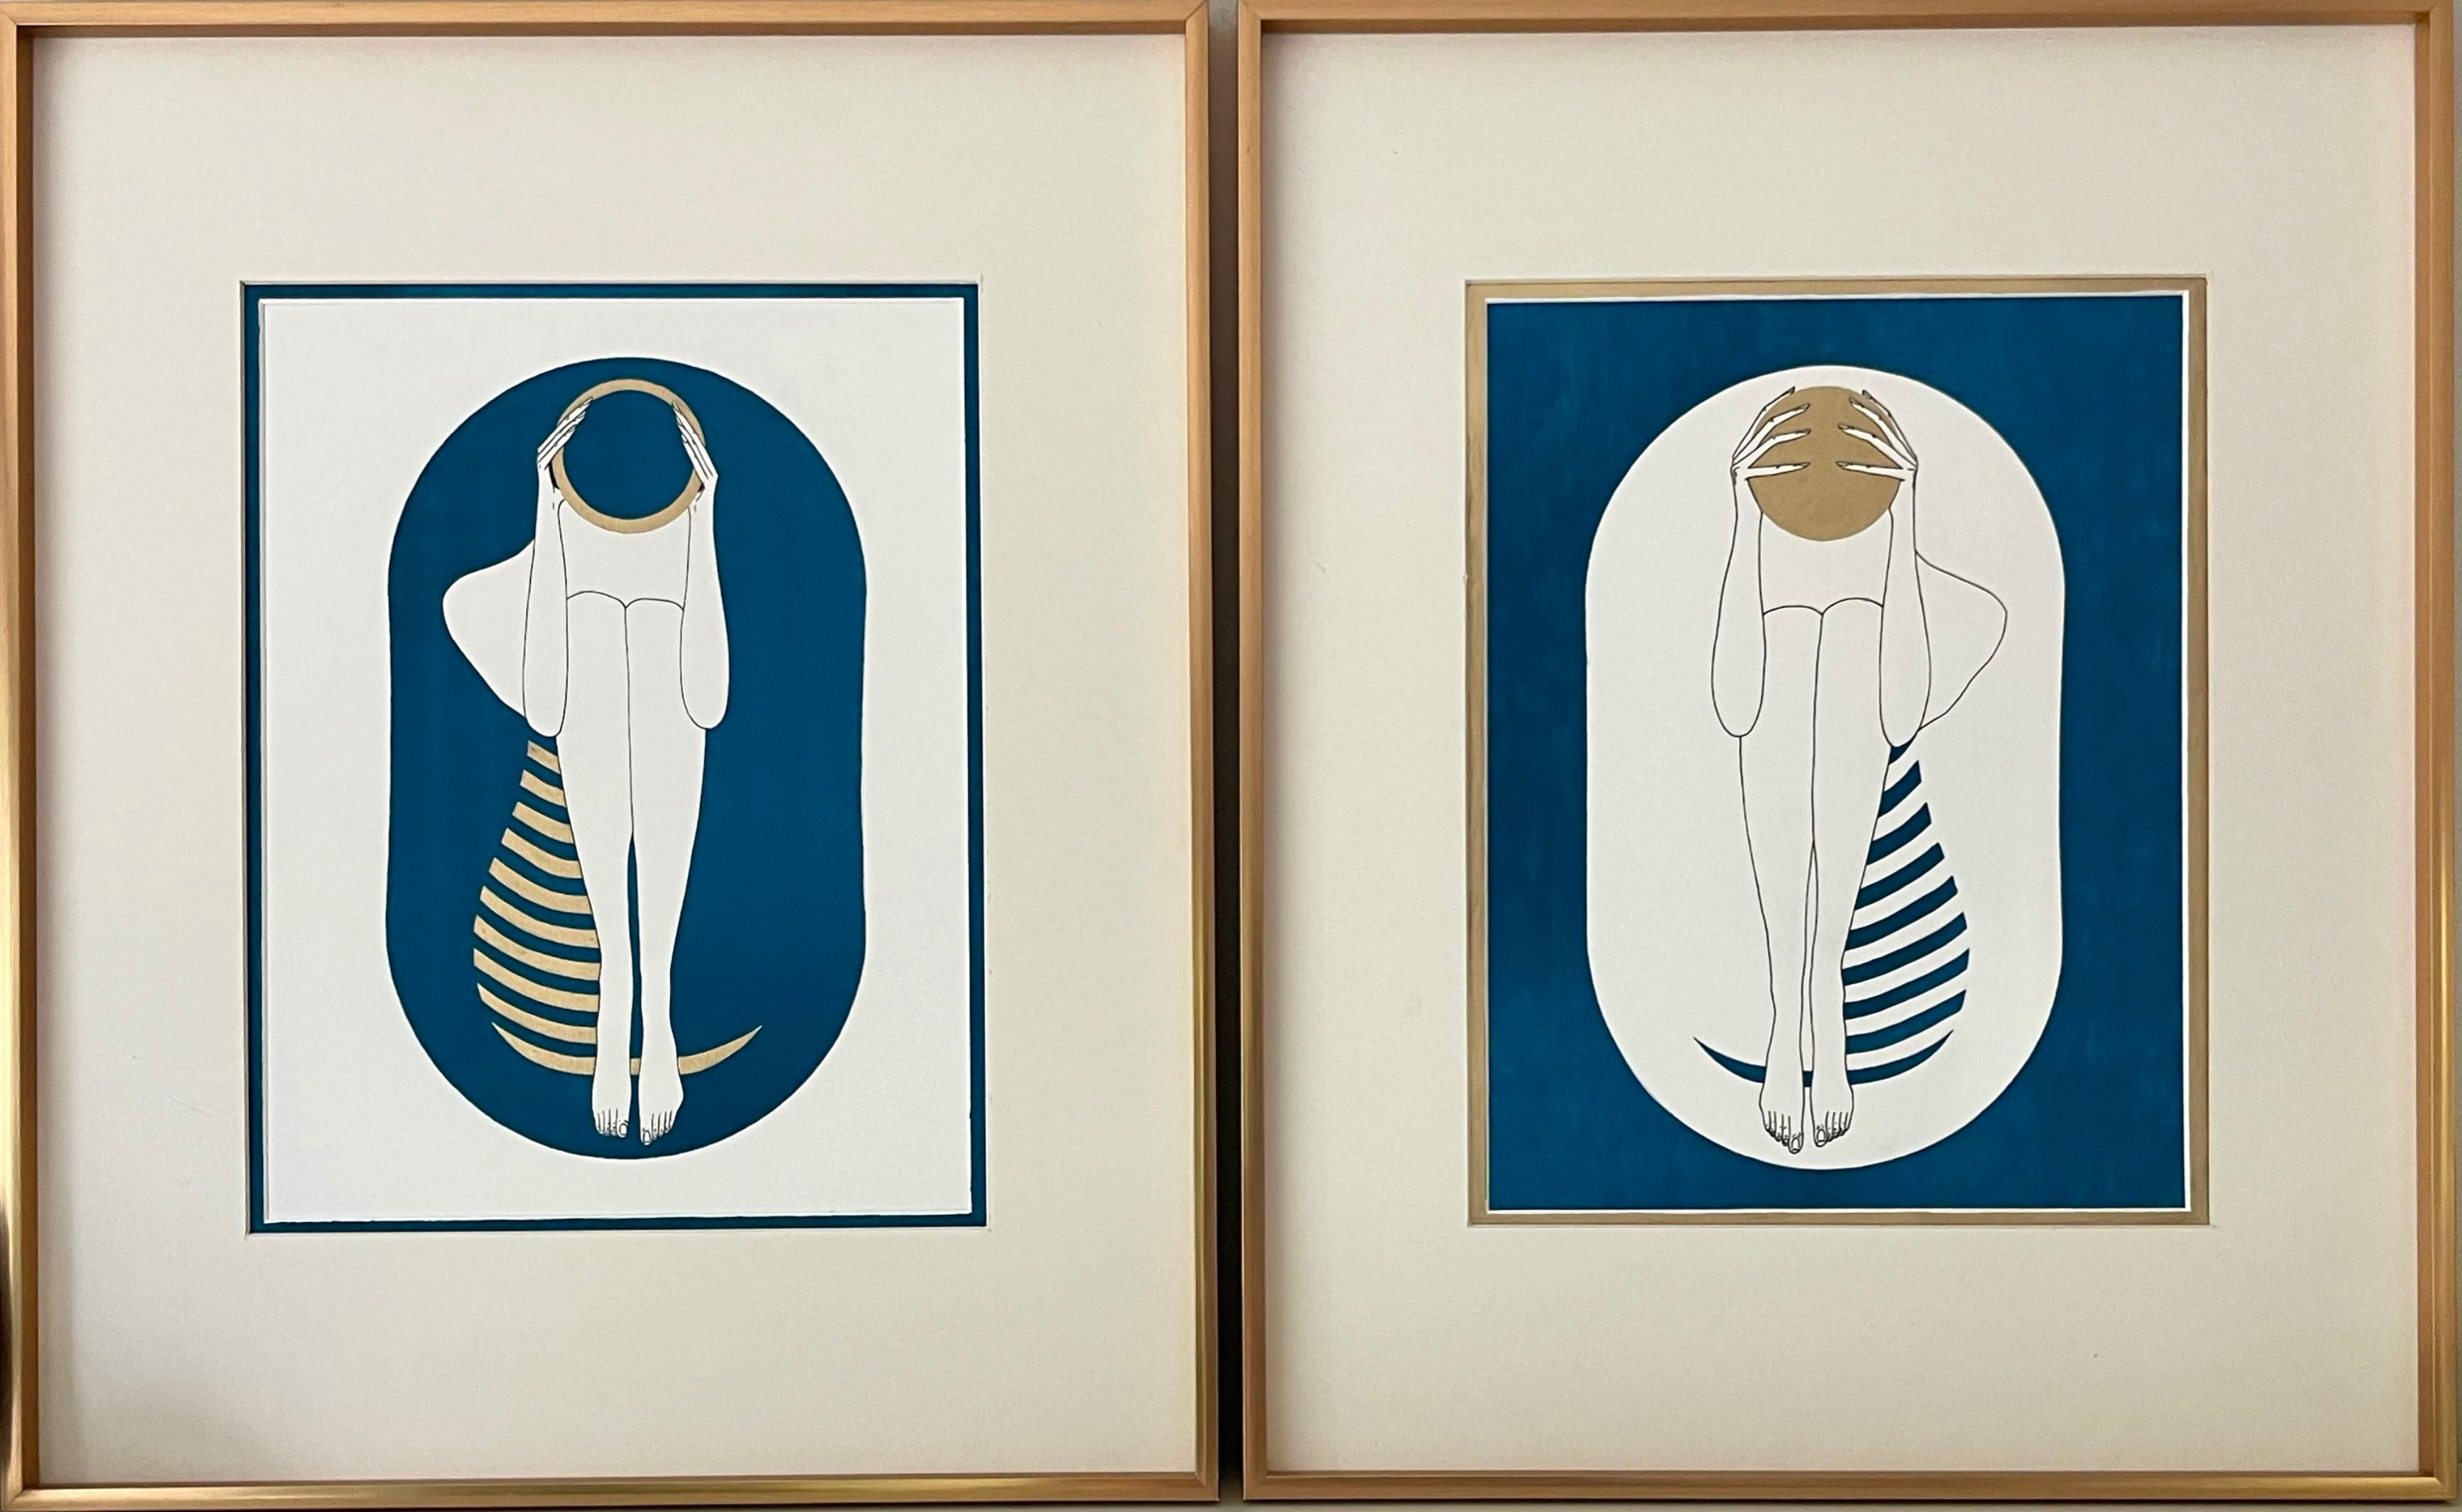 Turquoise and white capsule - line drawing figure with gold disk and stripes